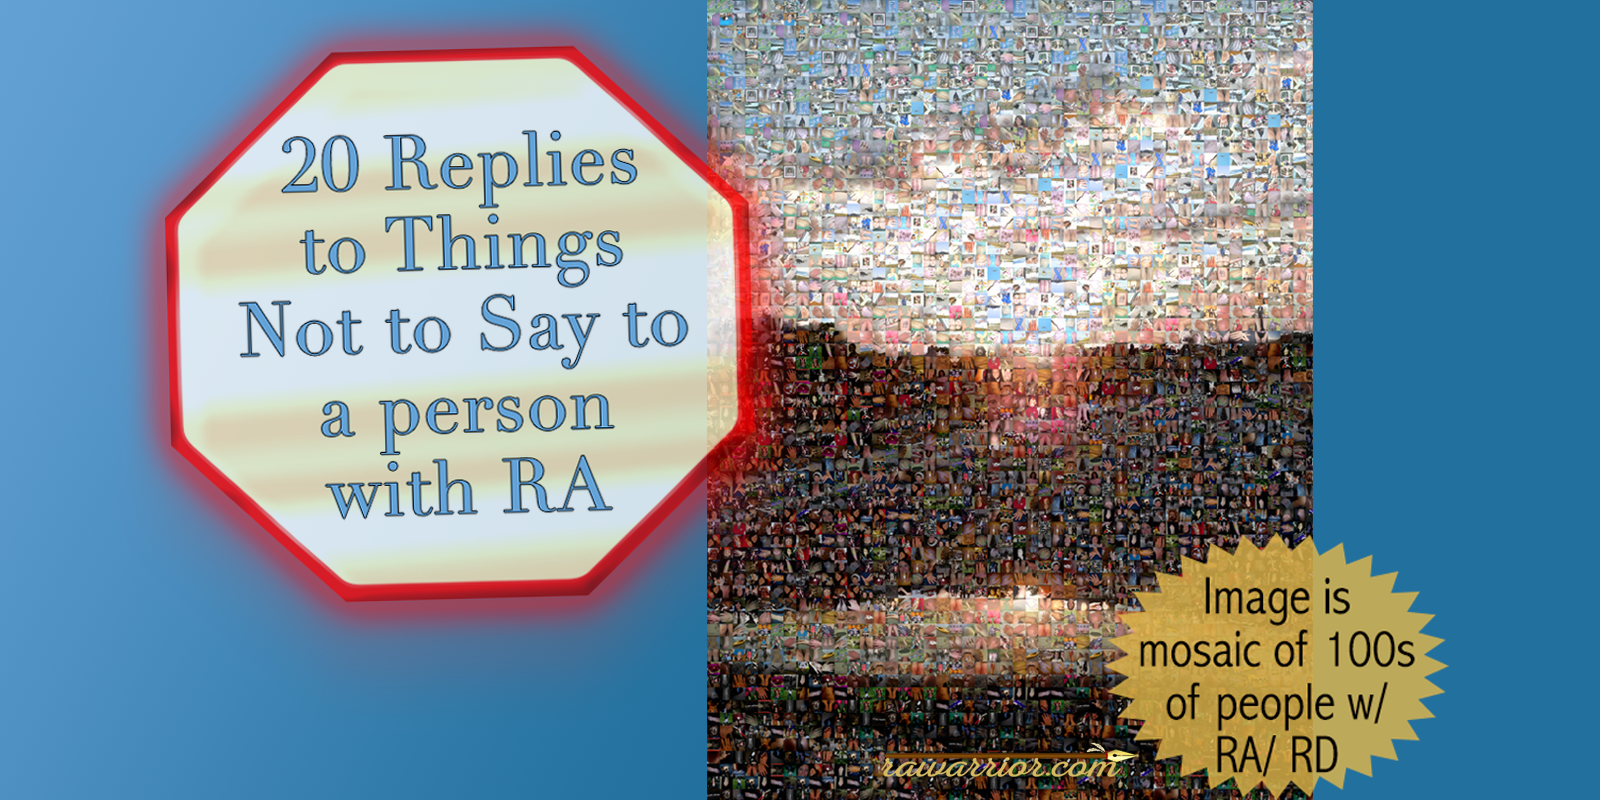 20 Replies to Things Not to Say to an RA Patient